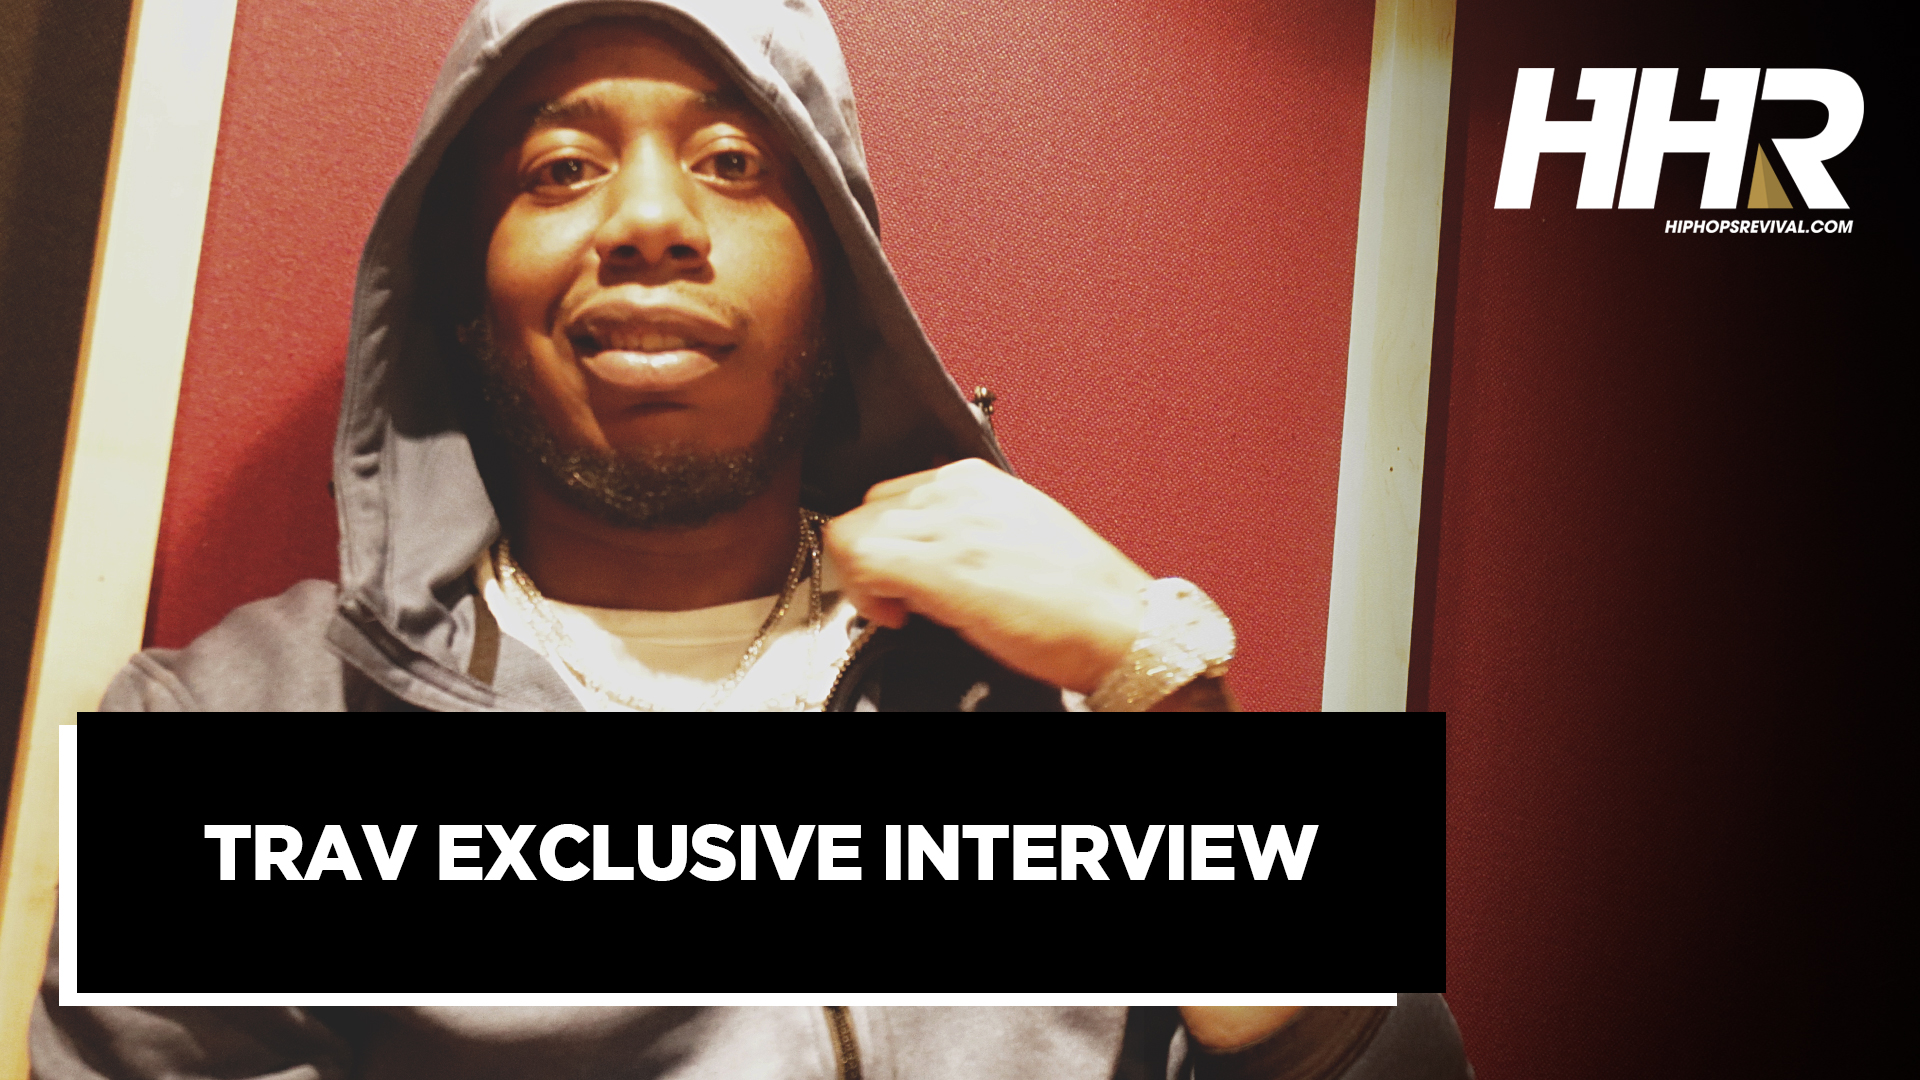 TRAVMBB speaks on Meek Mill, Boonk Not Coming Back To NY, New Music, & More With HipHopsRevival.com